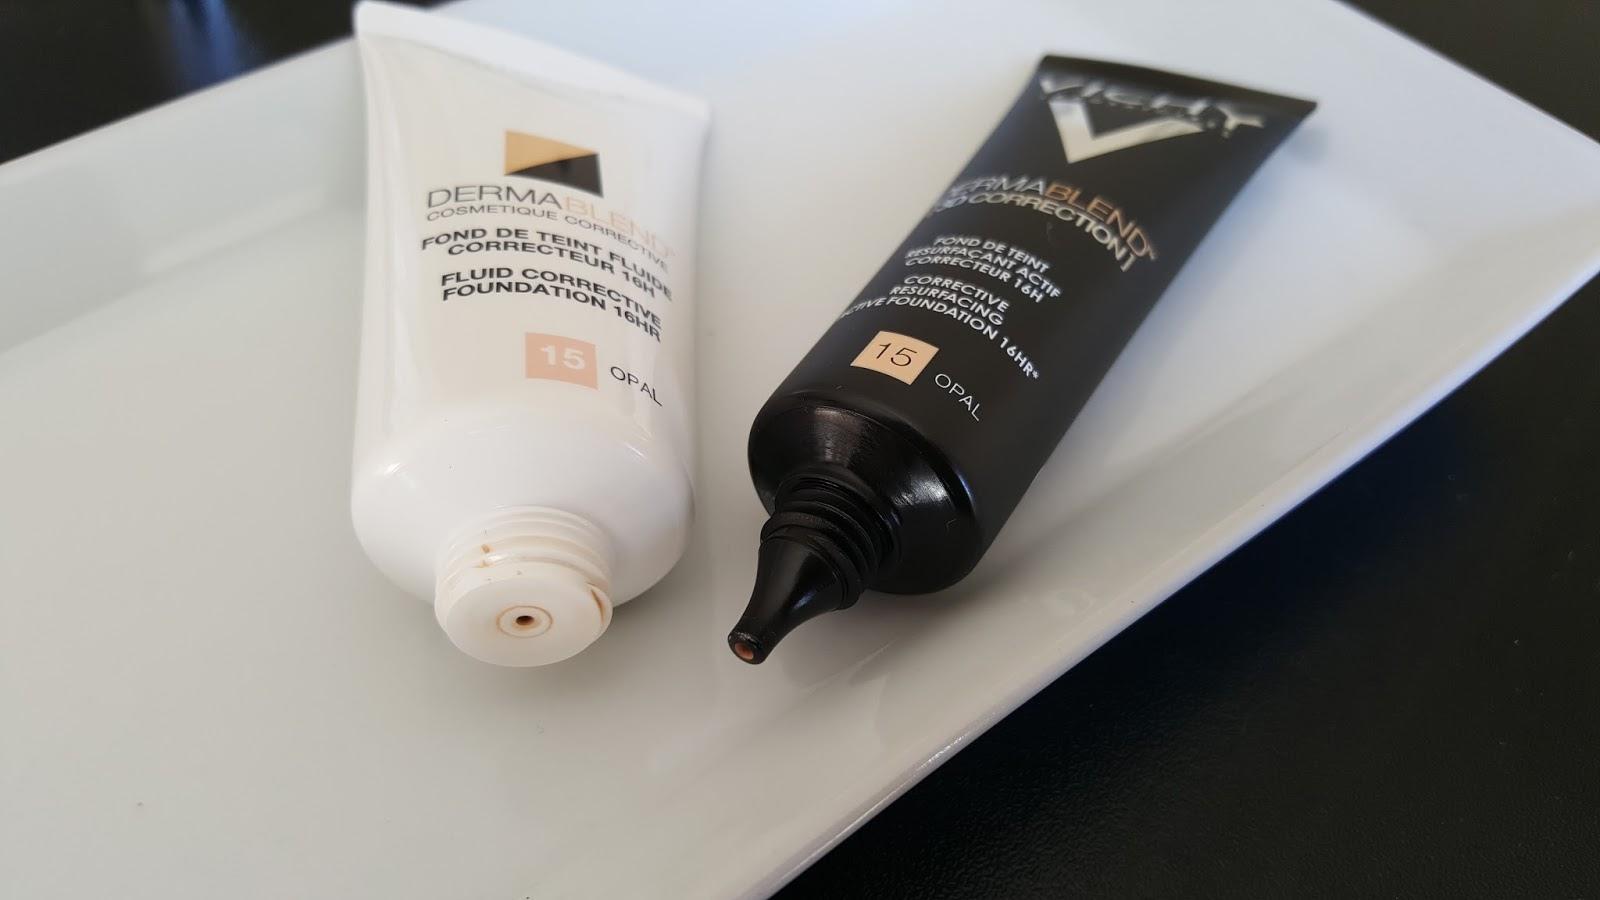 Review vichy dermablend 3d correction foundation every beauty the fluid corrective foundation looks a little lighter in the pictures but in reality both shades are identical when applied on the face geenschuldenfo Gallery